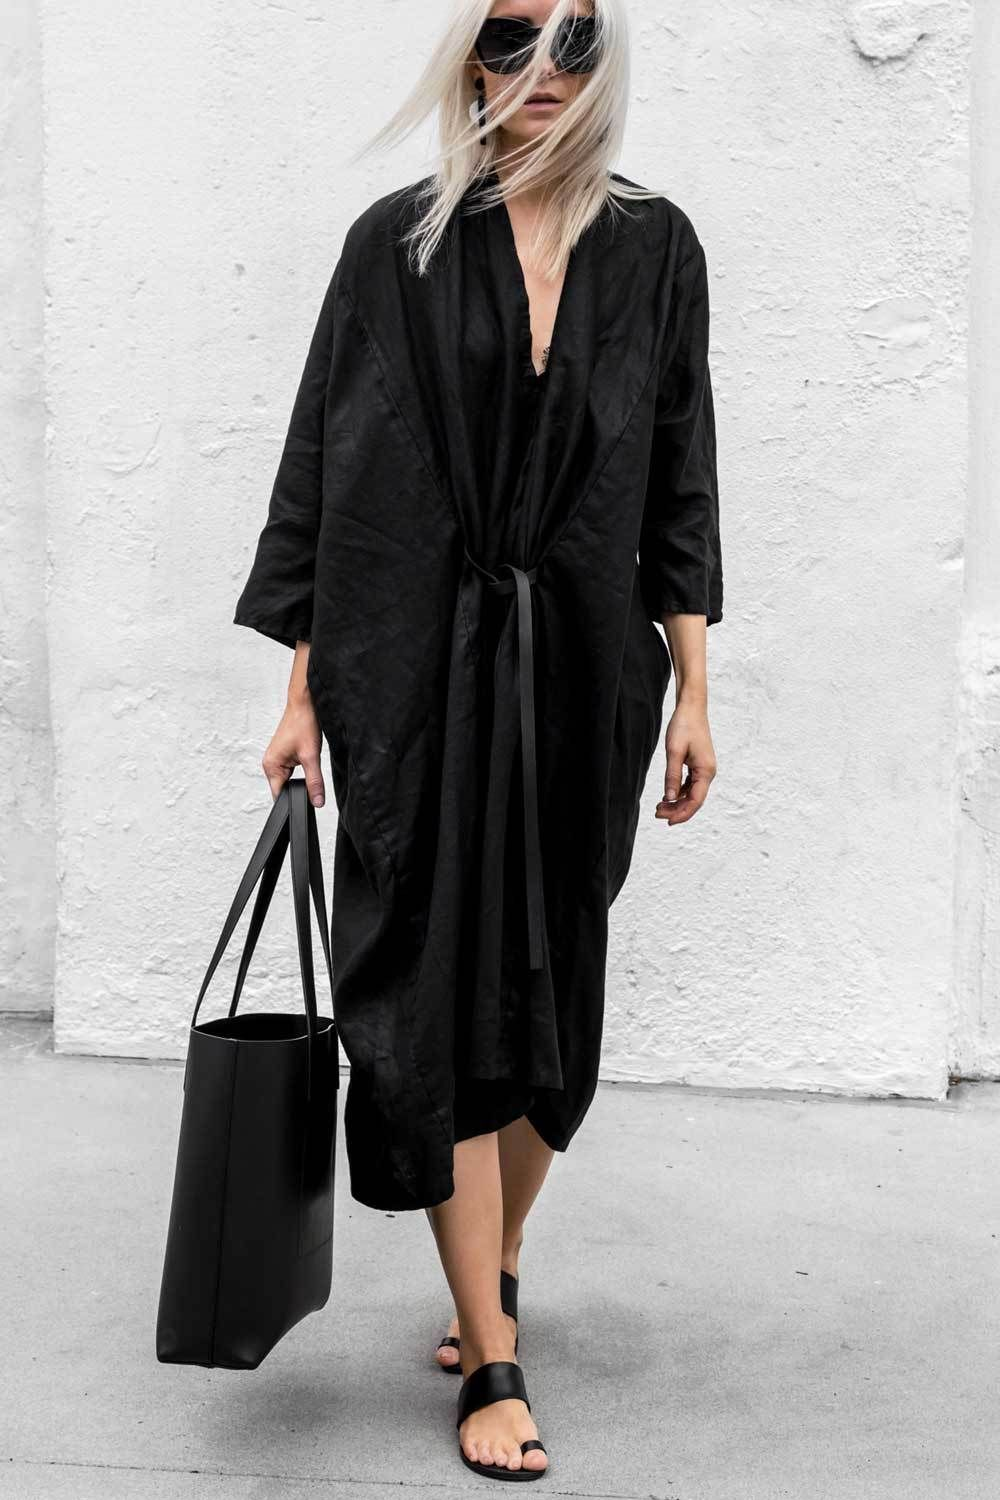 Miranda bennett studio oukeeffe dress street styles black and summer